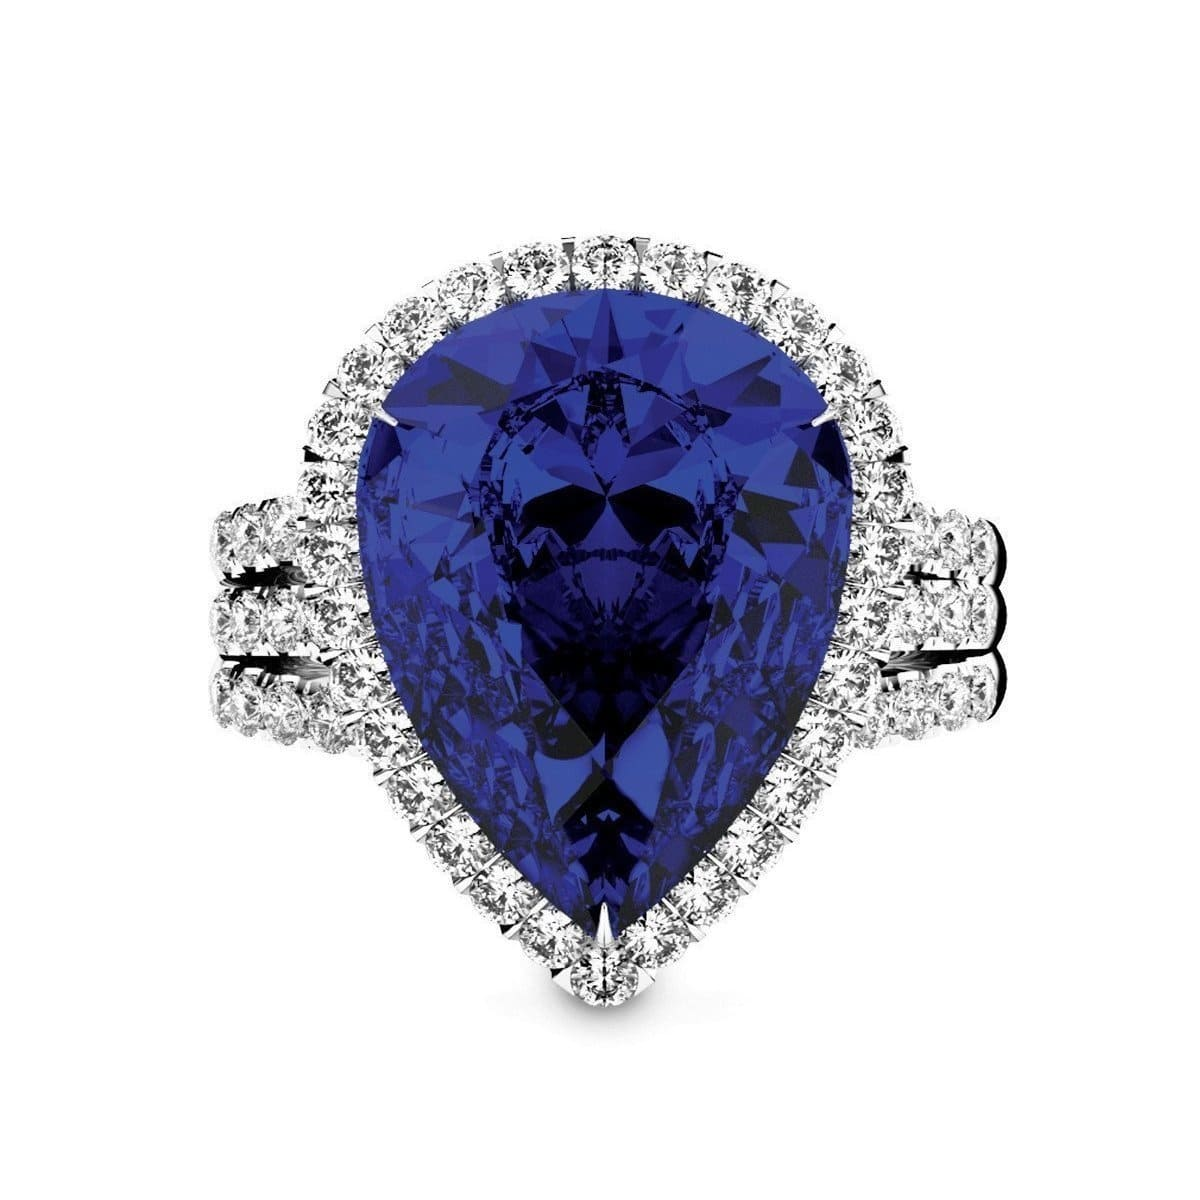 White Gold, Blue Sapphire & Diamond Cocktail Ring